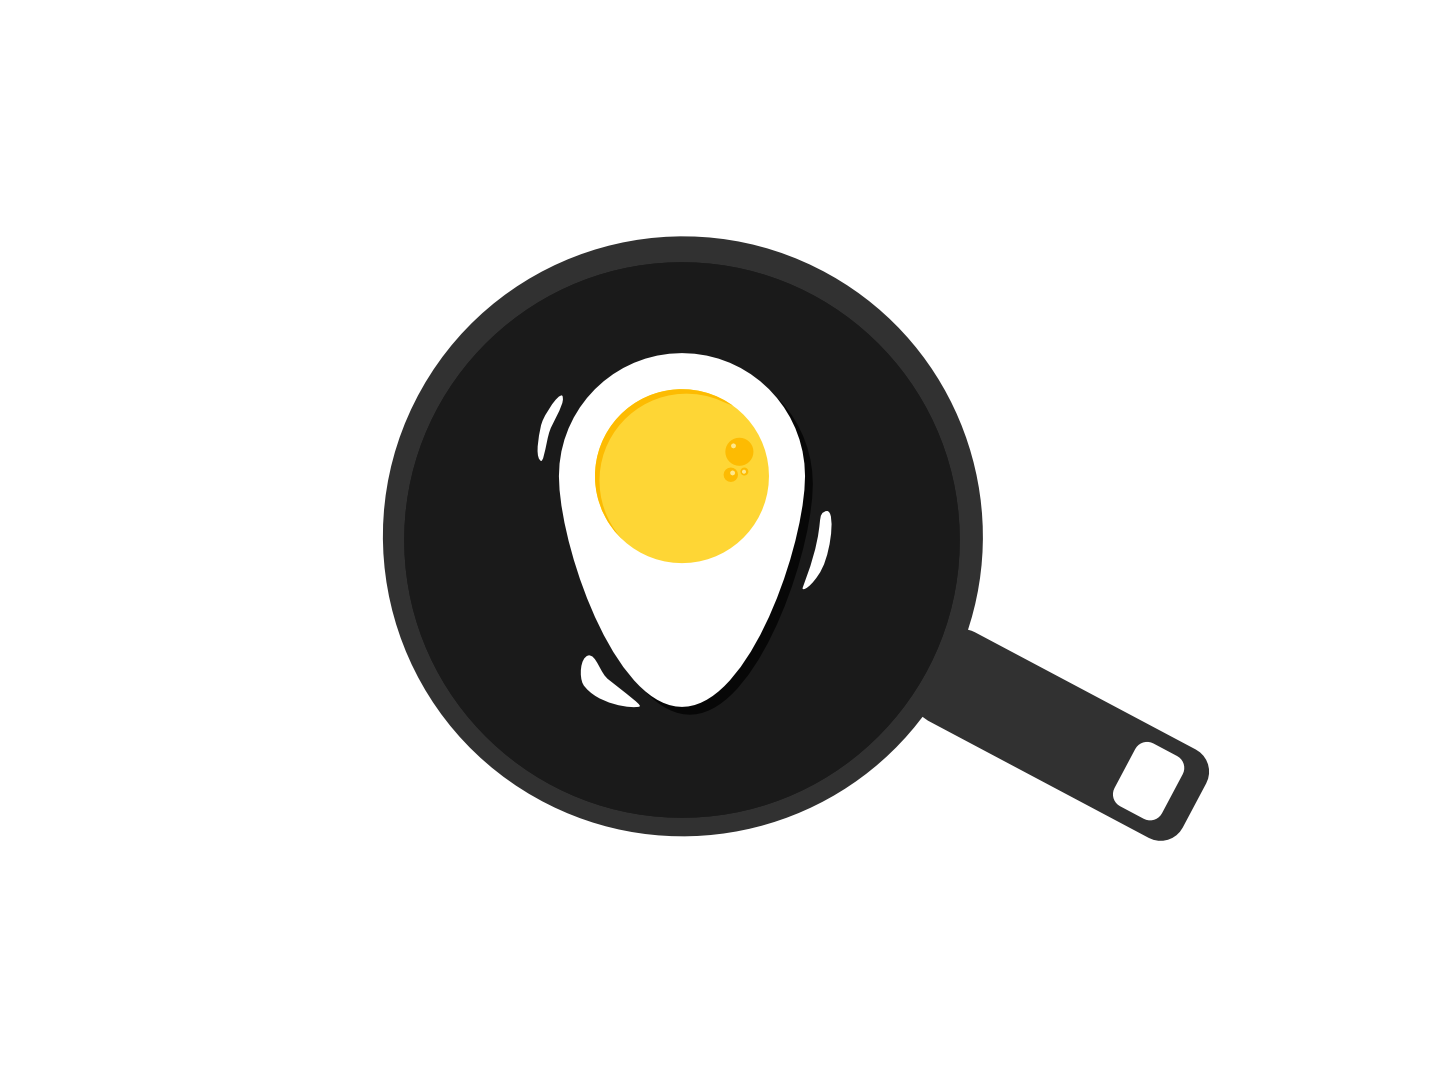 Logo Concept Egg And Locator Pin by Nurudeen Akanni on Dribbble.